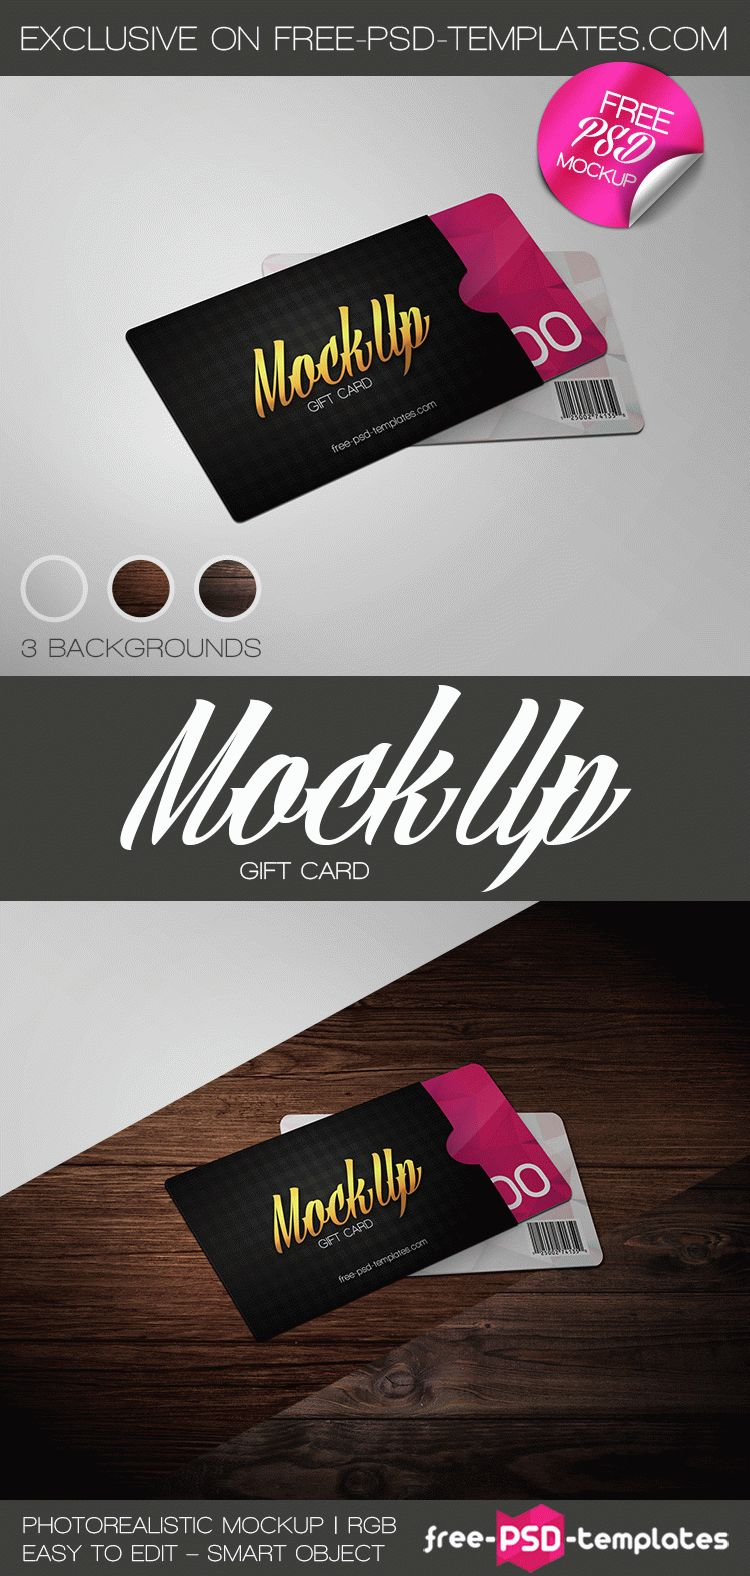 Bigpreview_free-gift-card-mock-up-in-psd_result